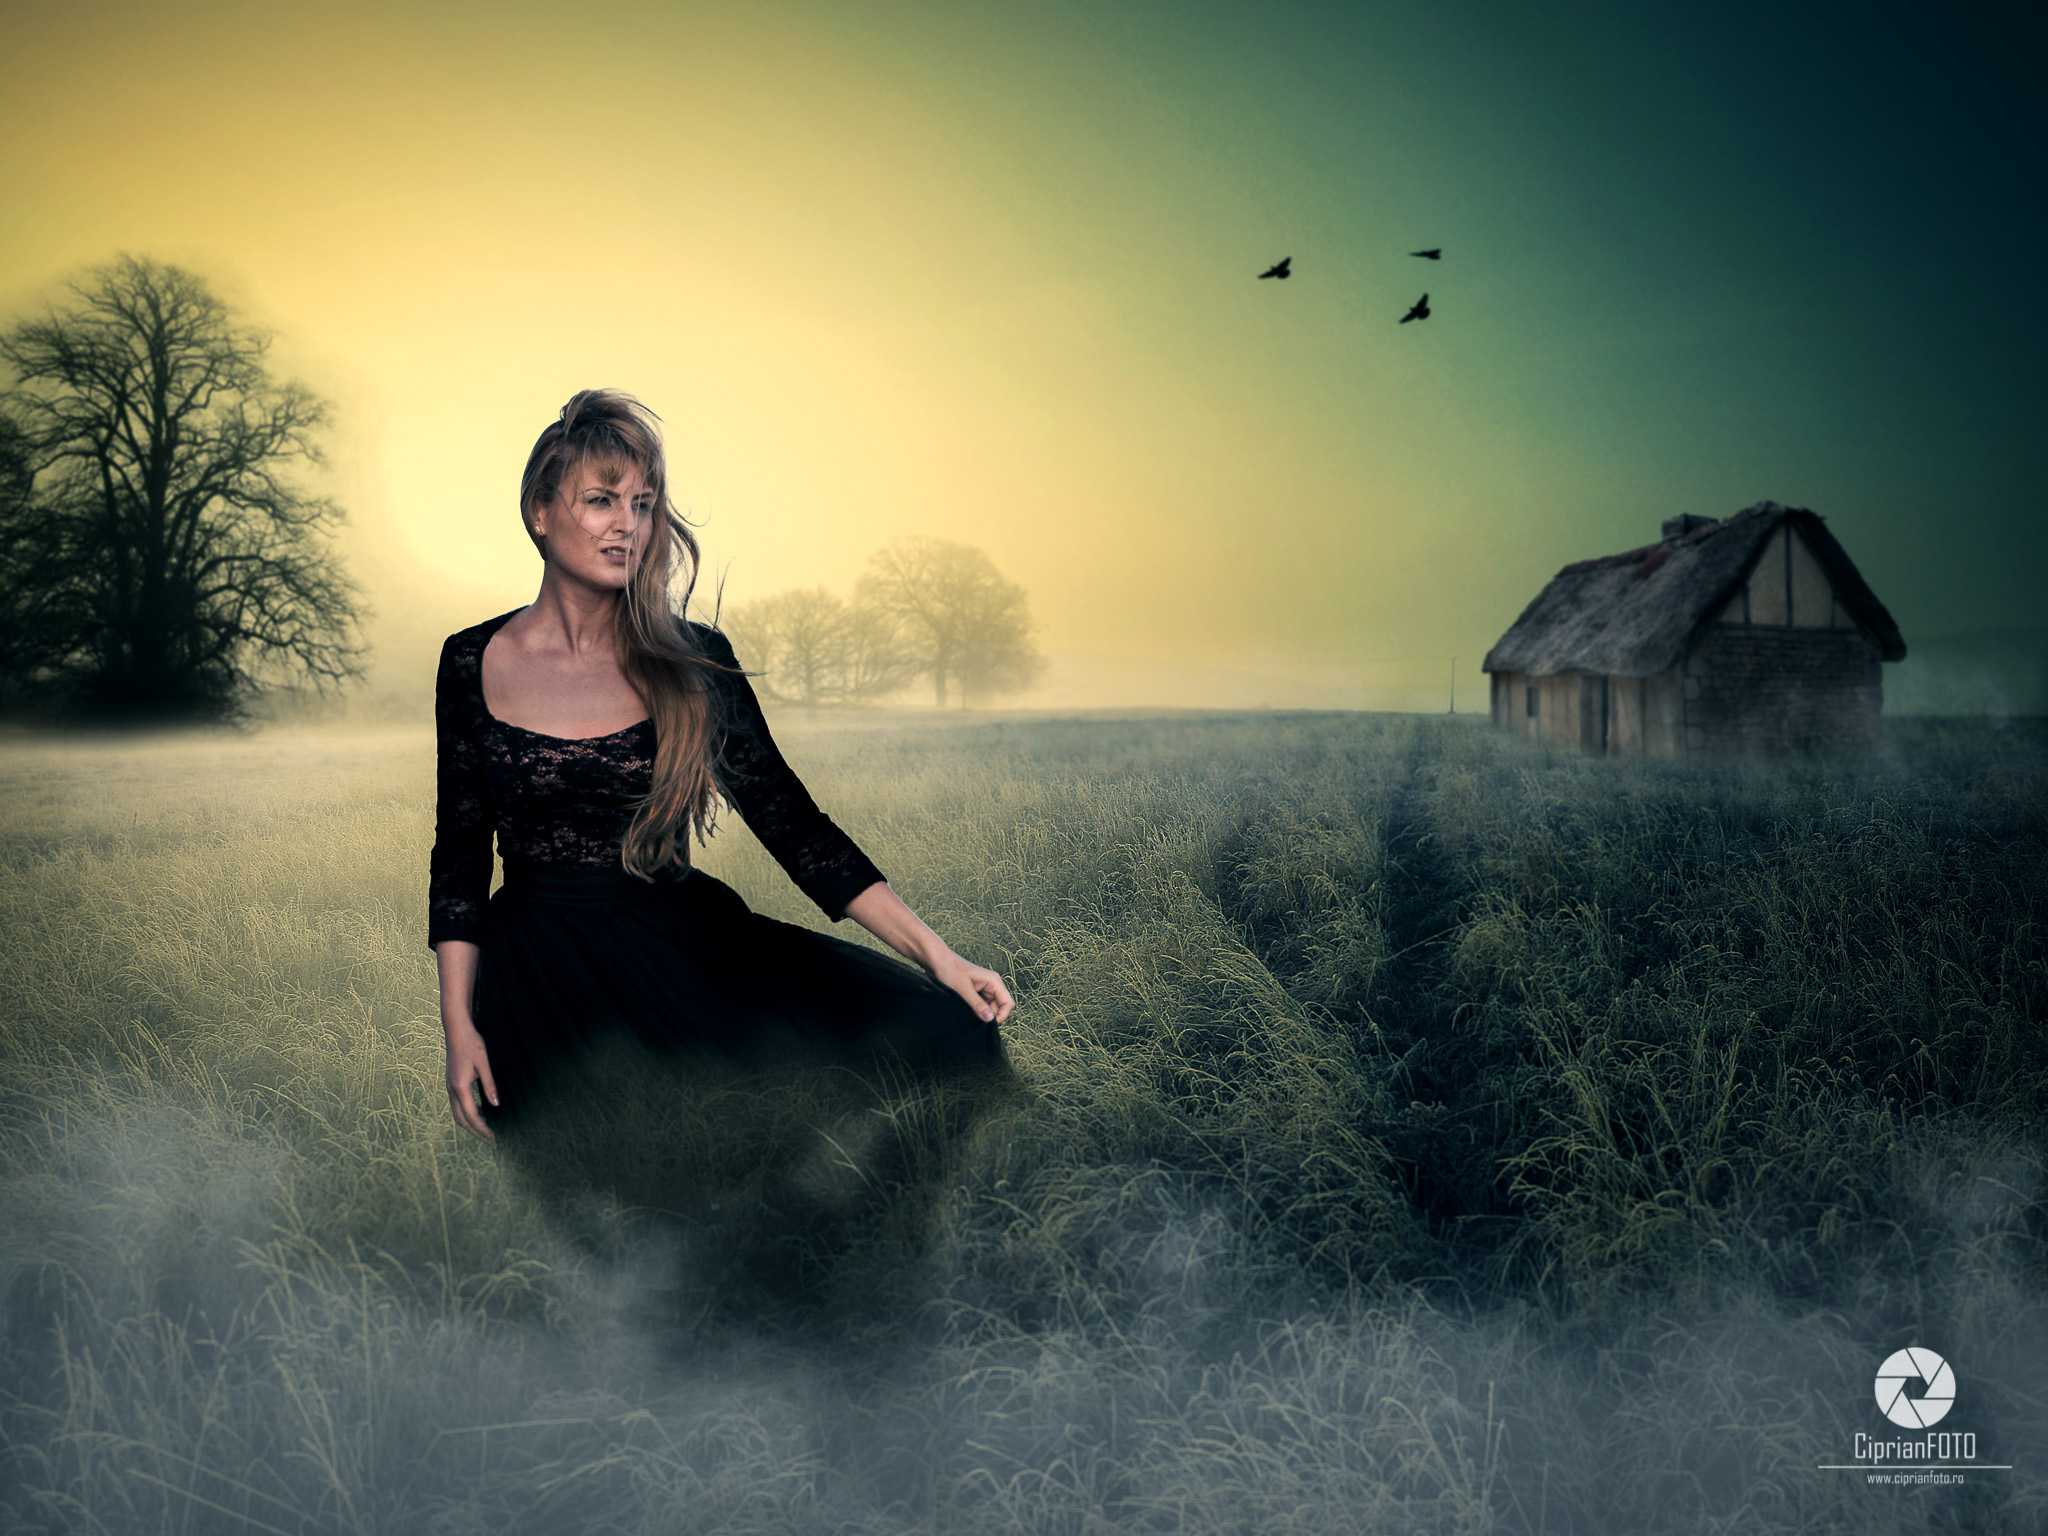 Girl_On_The_Field_Photoshop_Manipulation_Tutorial_CiprianFOTO